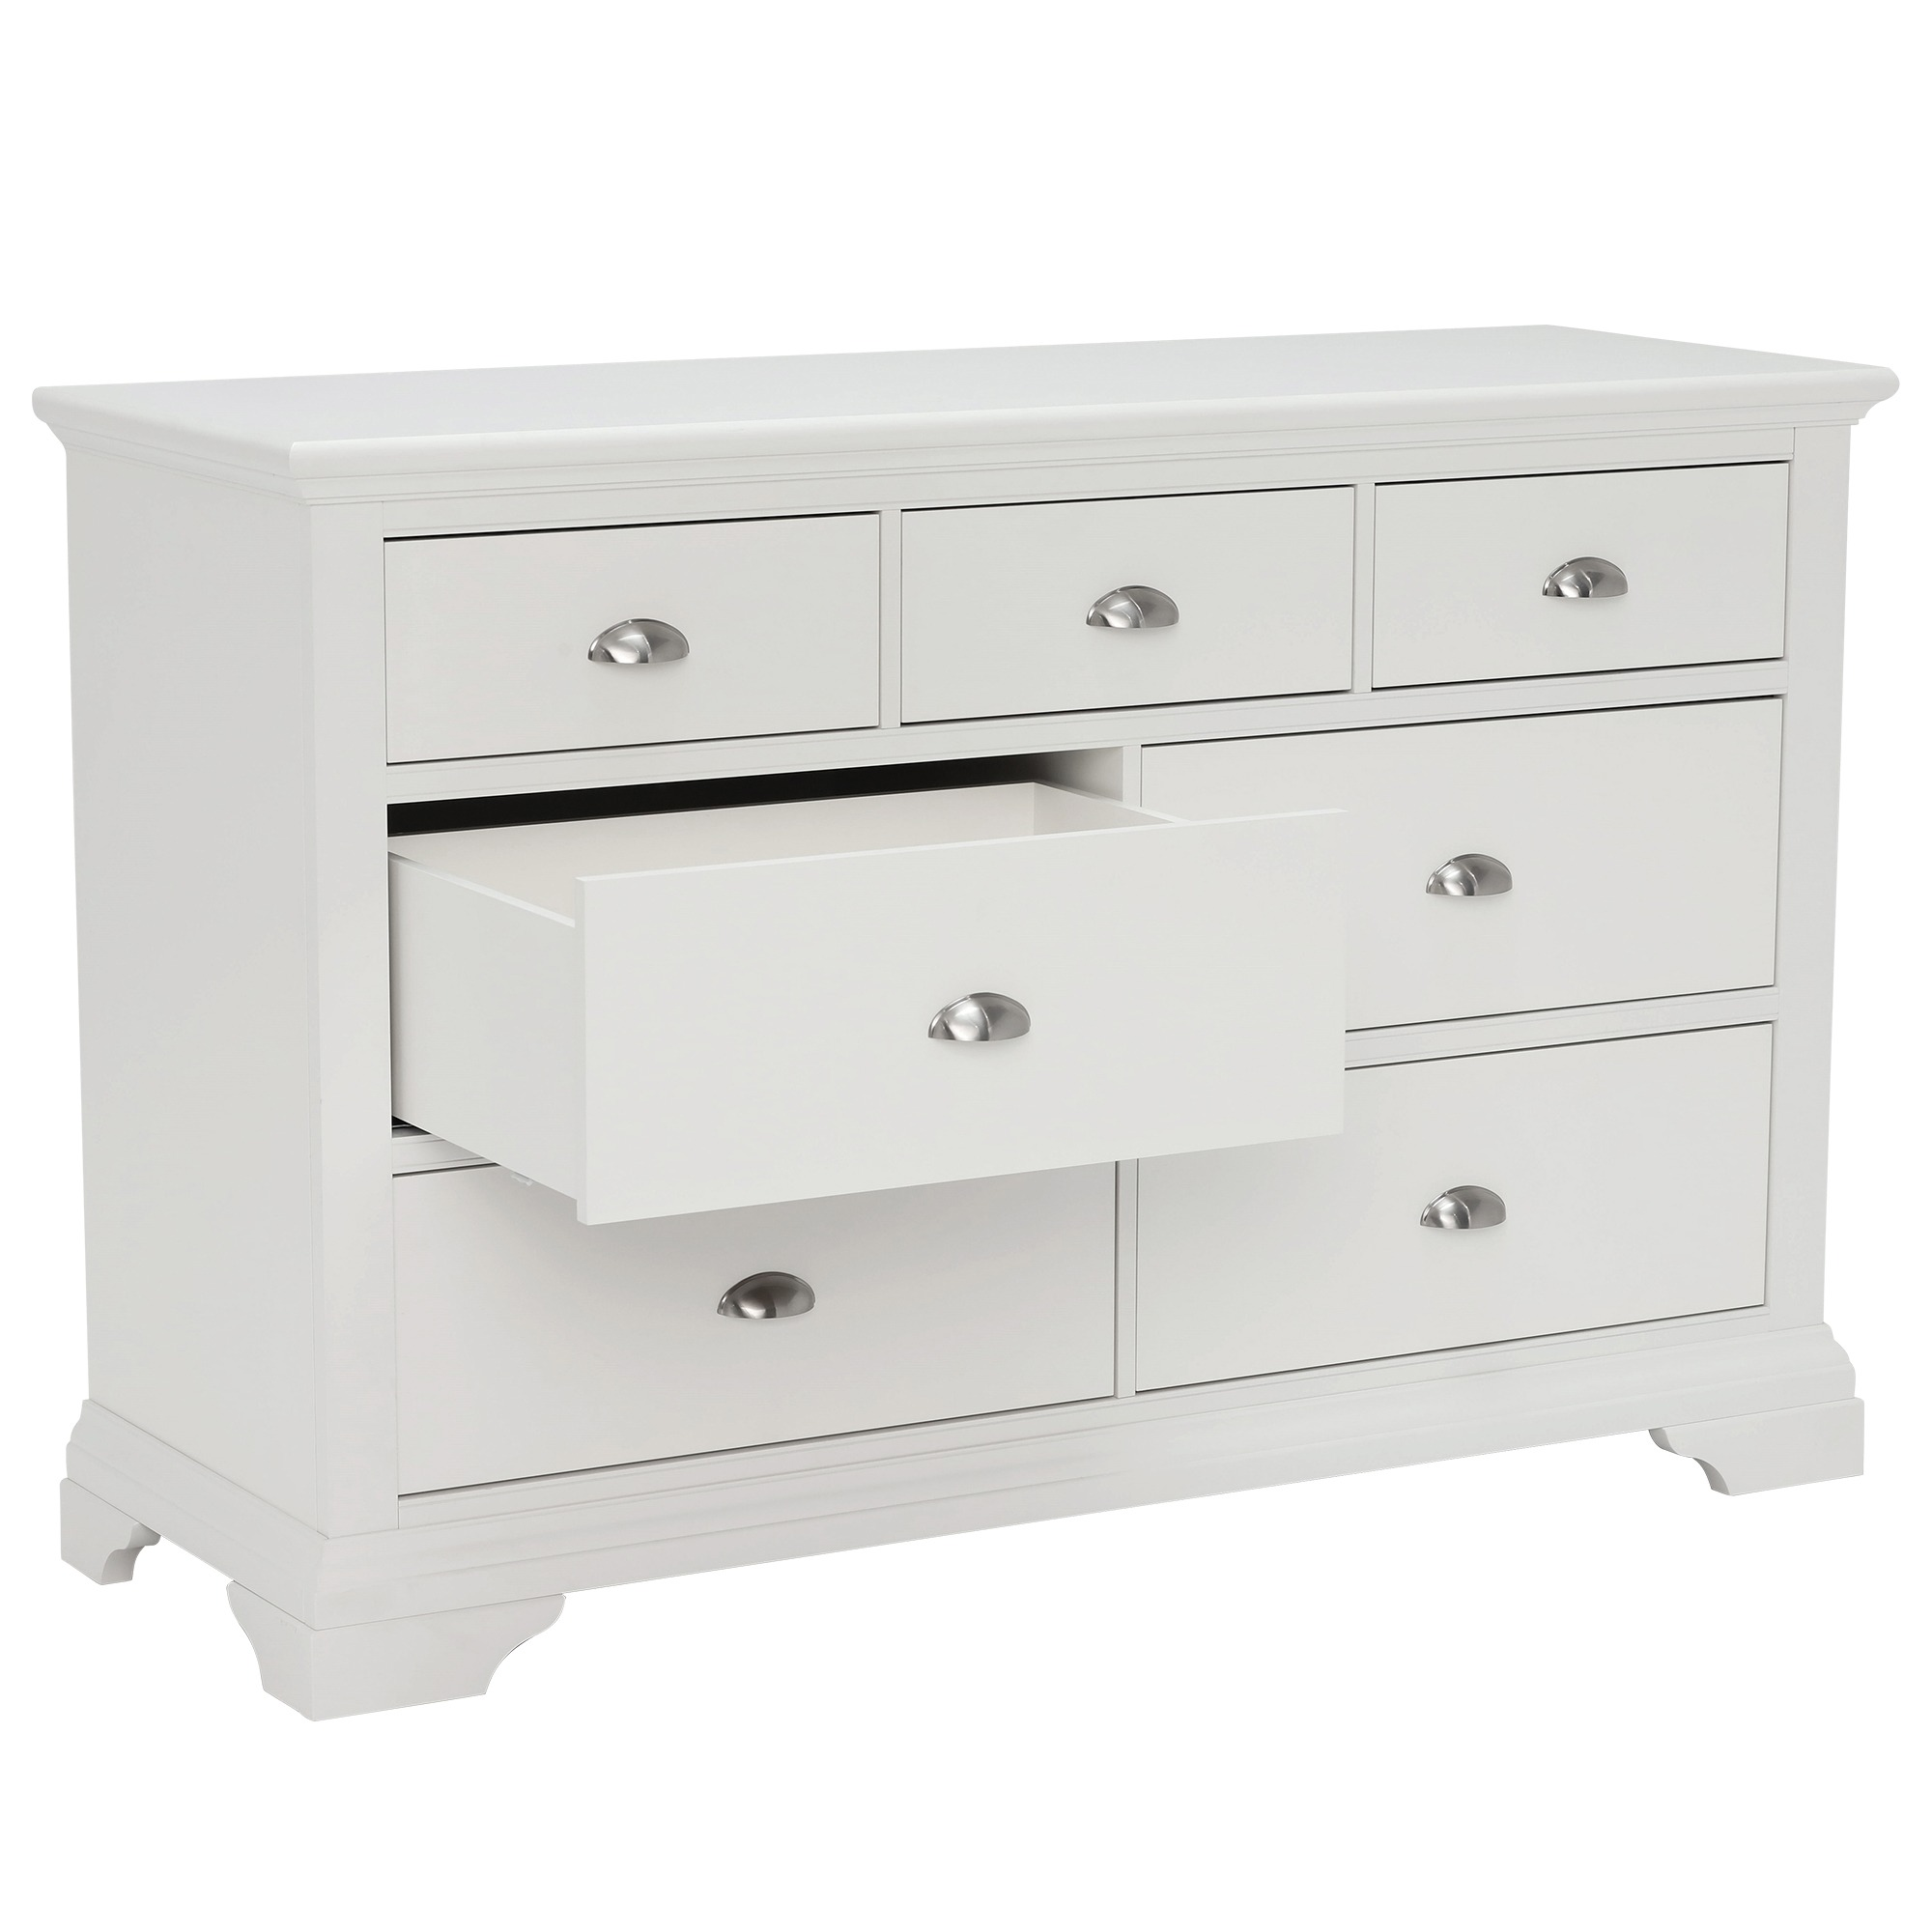 KYRA WHITE WIDE CHEST - DRAWER DETAIL